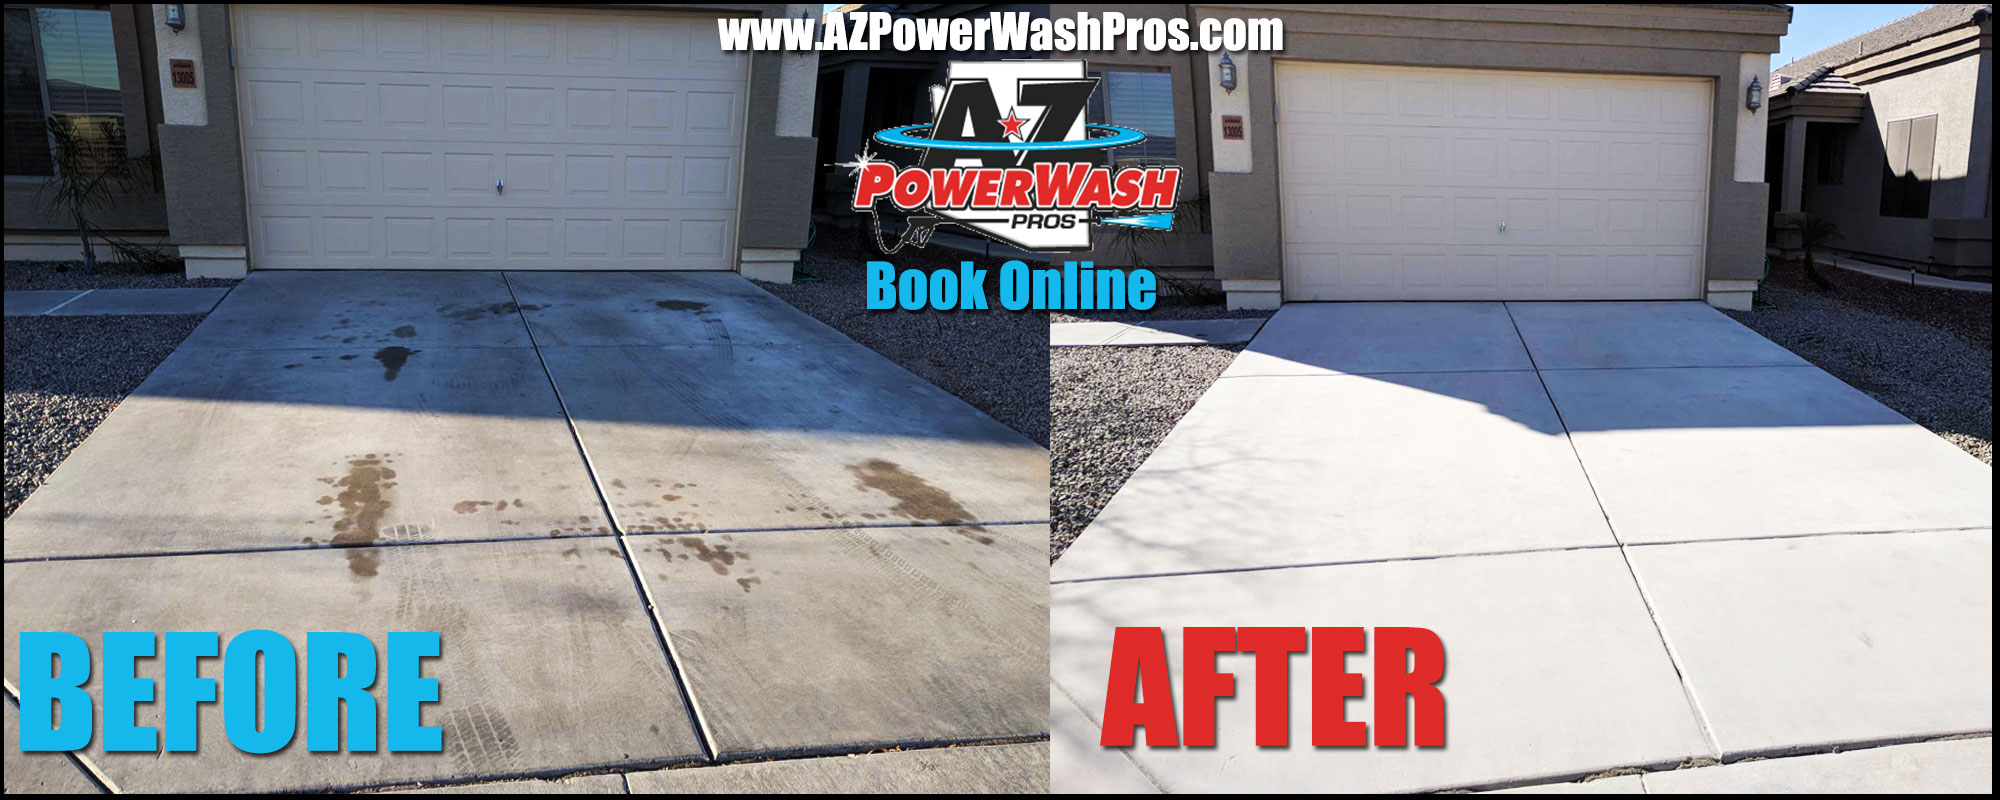 driveway-cleaning-service-phoenix